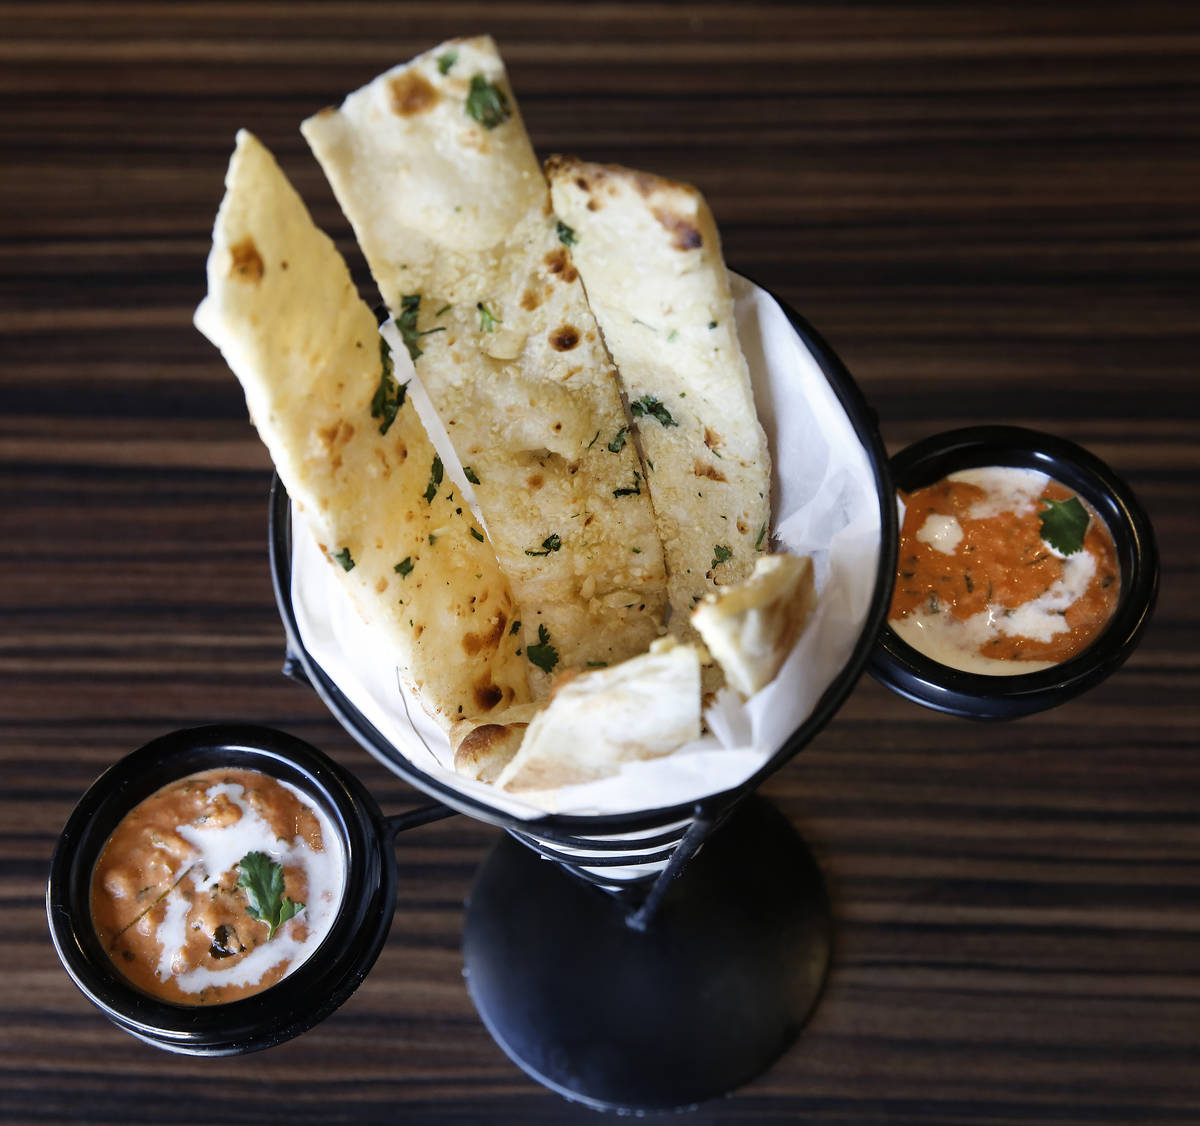 Mint Indian Bistro locations at 730 E. Flamingo Road and 4246 S. Durango Drive are open for din ...